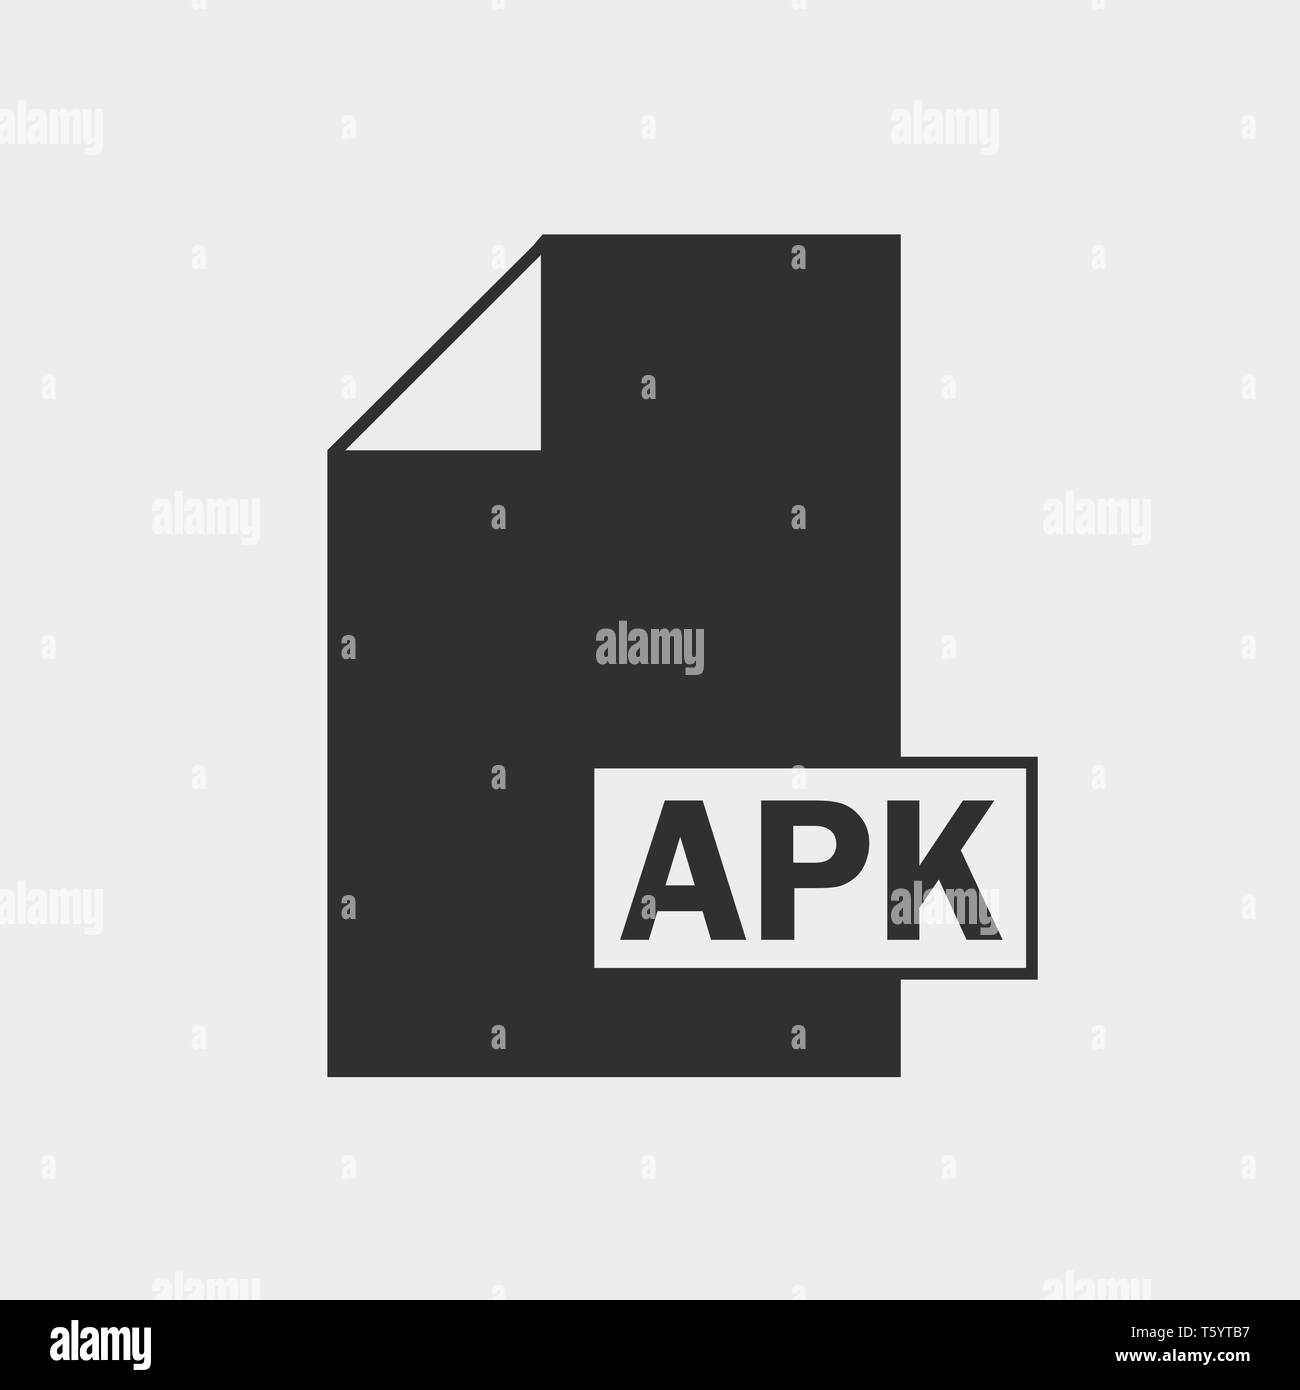 Apk Stock Photos & Apk Stock Images - Alamy